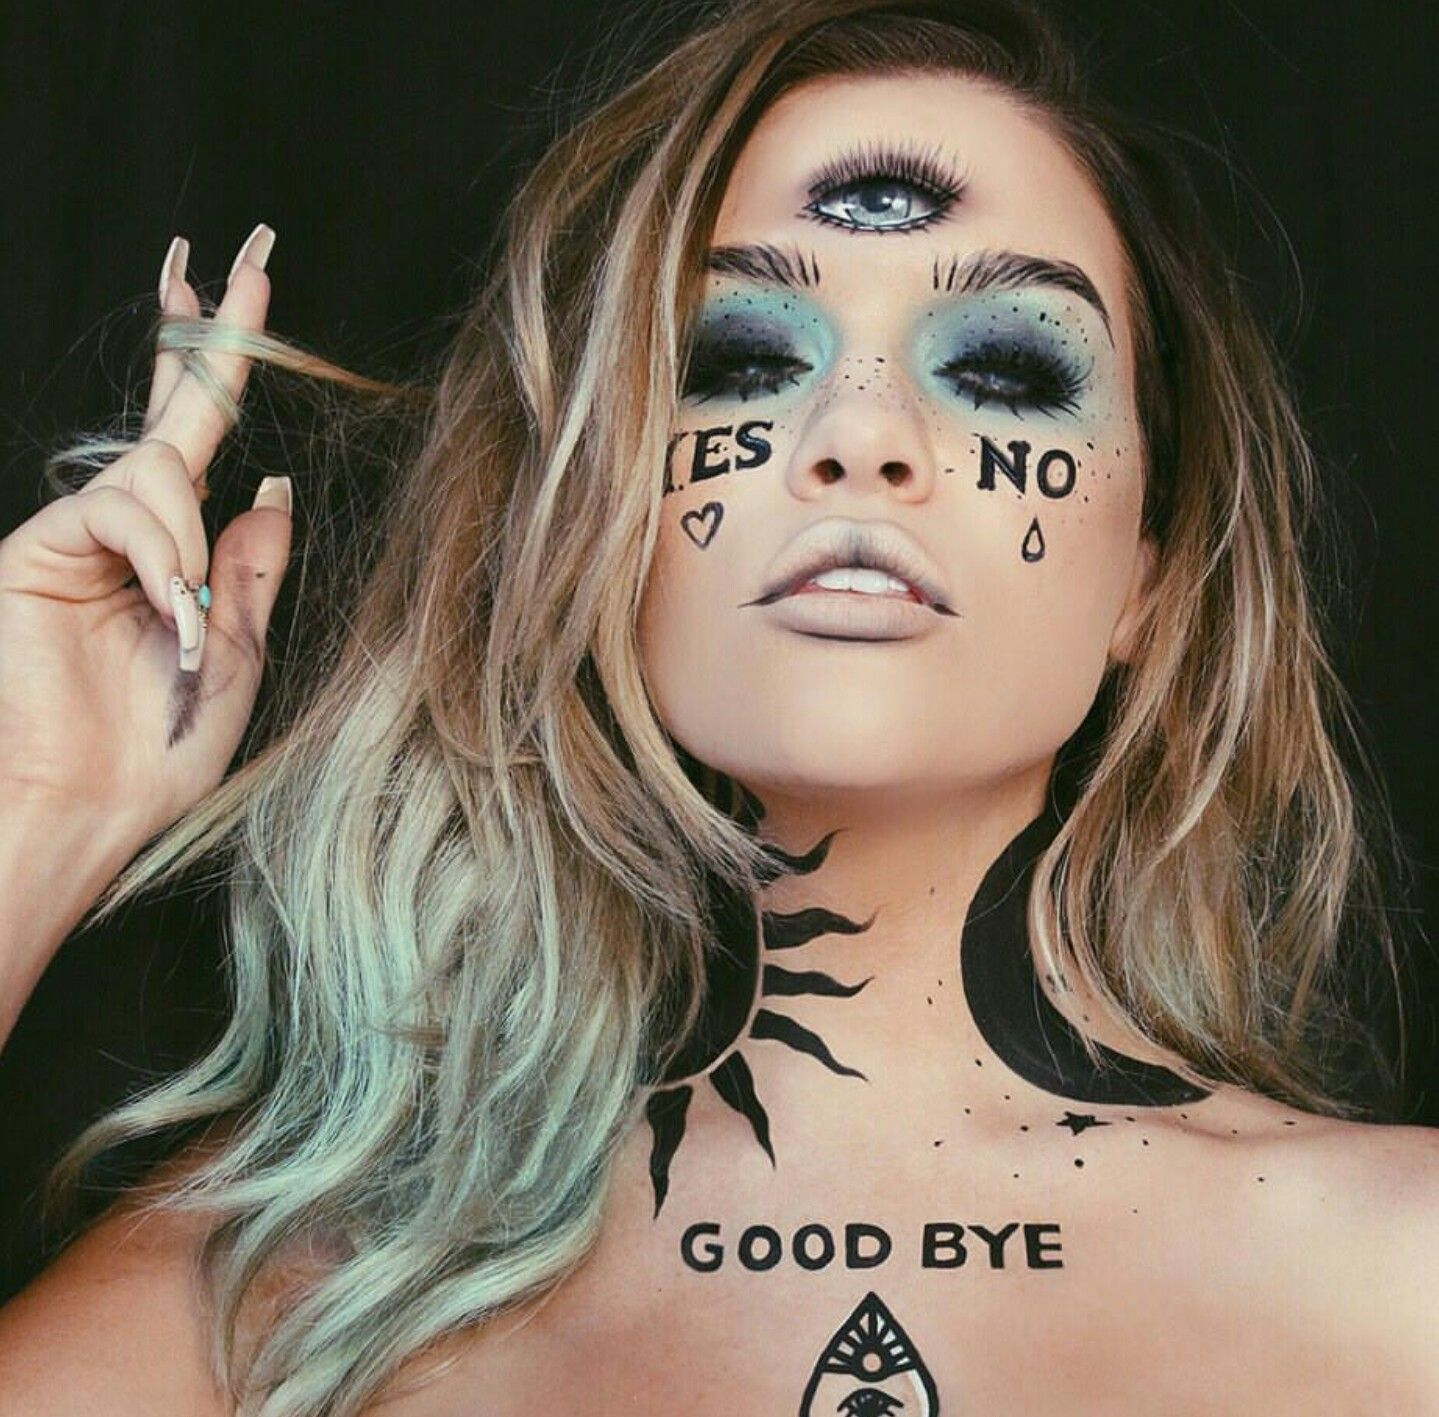 ouija board costume halloween costumes pinterest ouija youtube and costumes. Black Bedroom Furniture Sets. Home Design Ideas